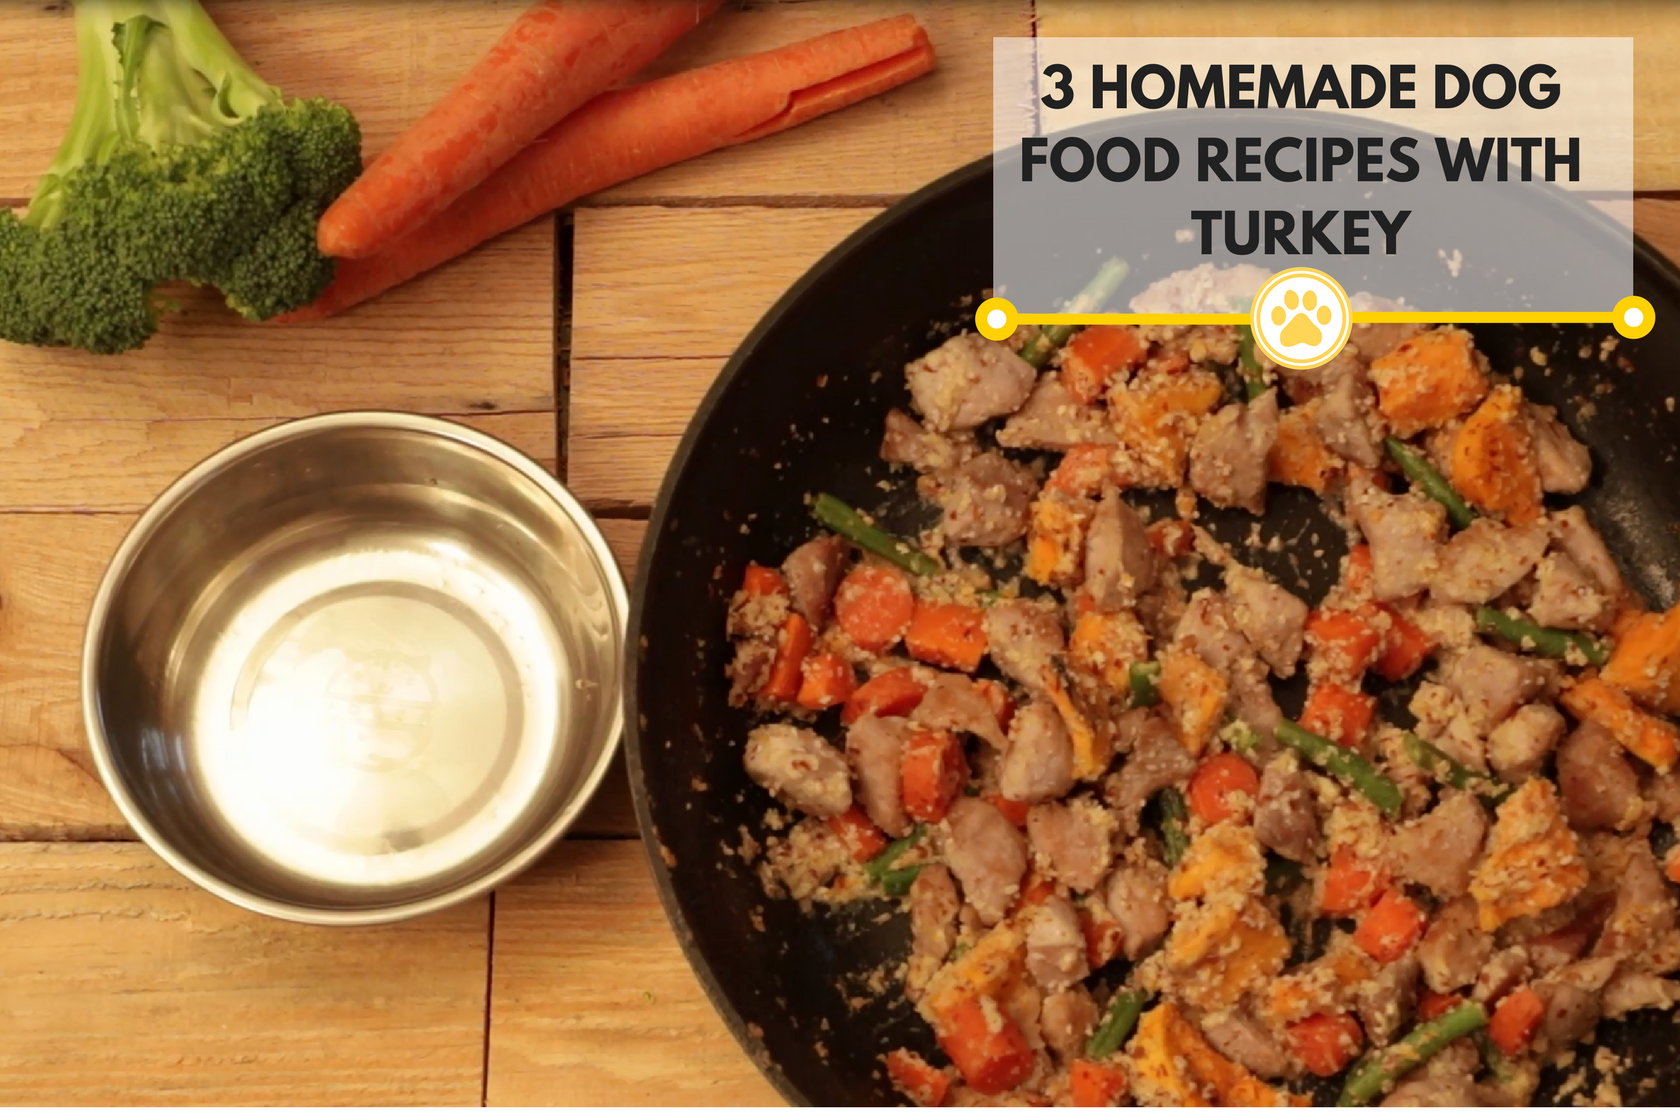 20 Homade Dog Food Recipes 3 homemade dog food recipes with turkey   carlson pet products